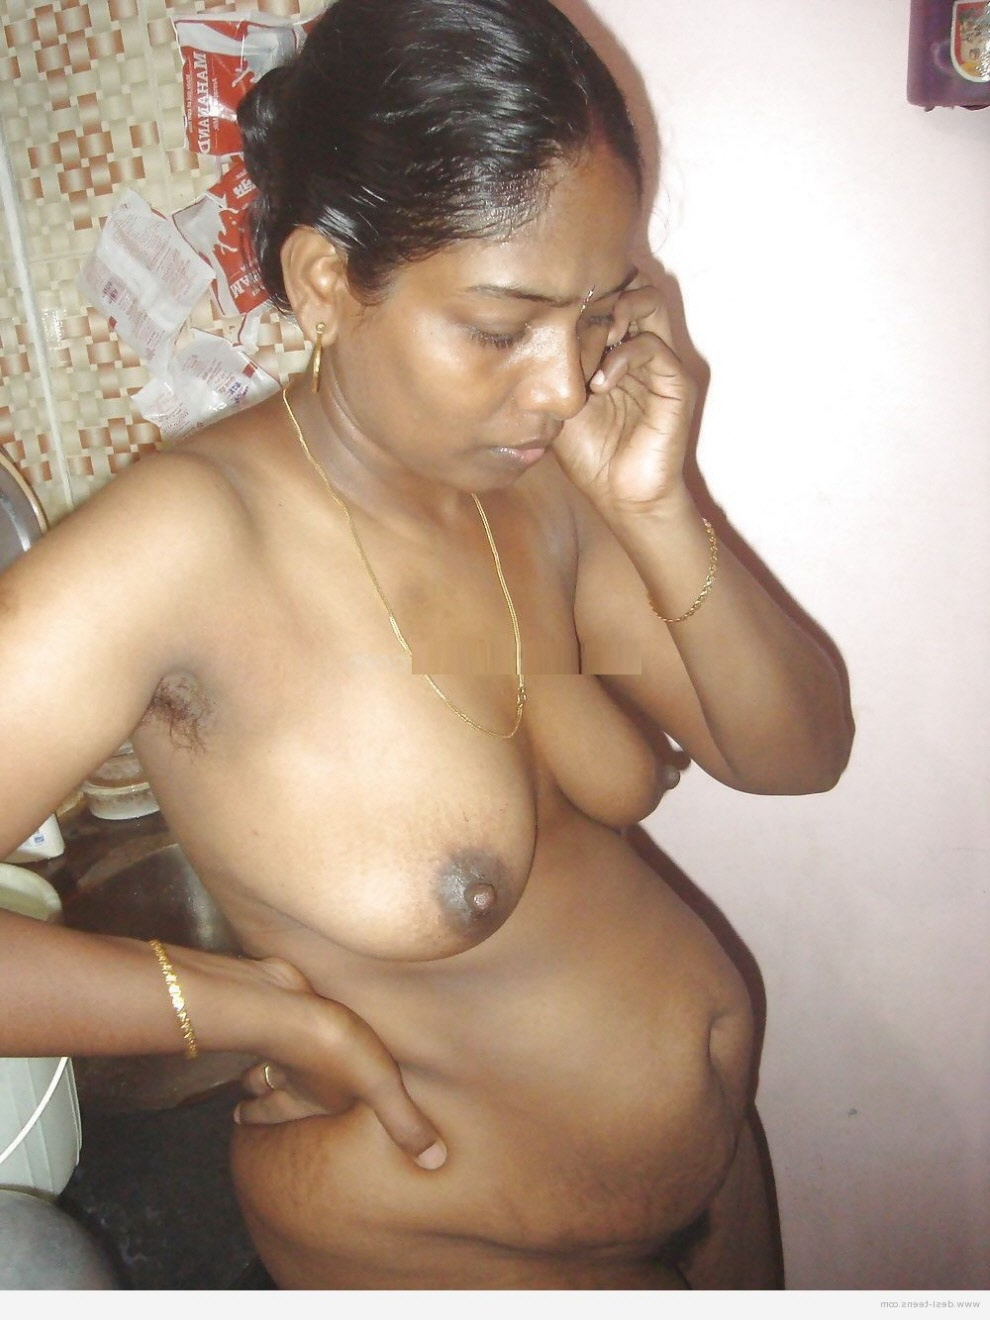 wife-hot-nude-tamil-pdf-shemale-banged-gallery